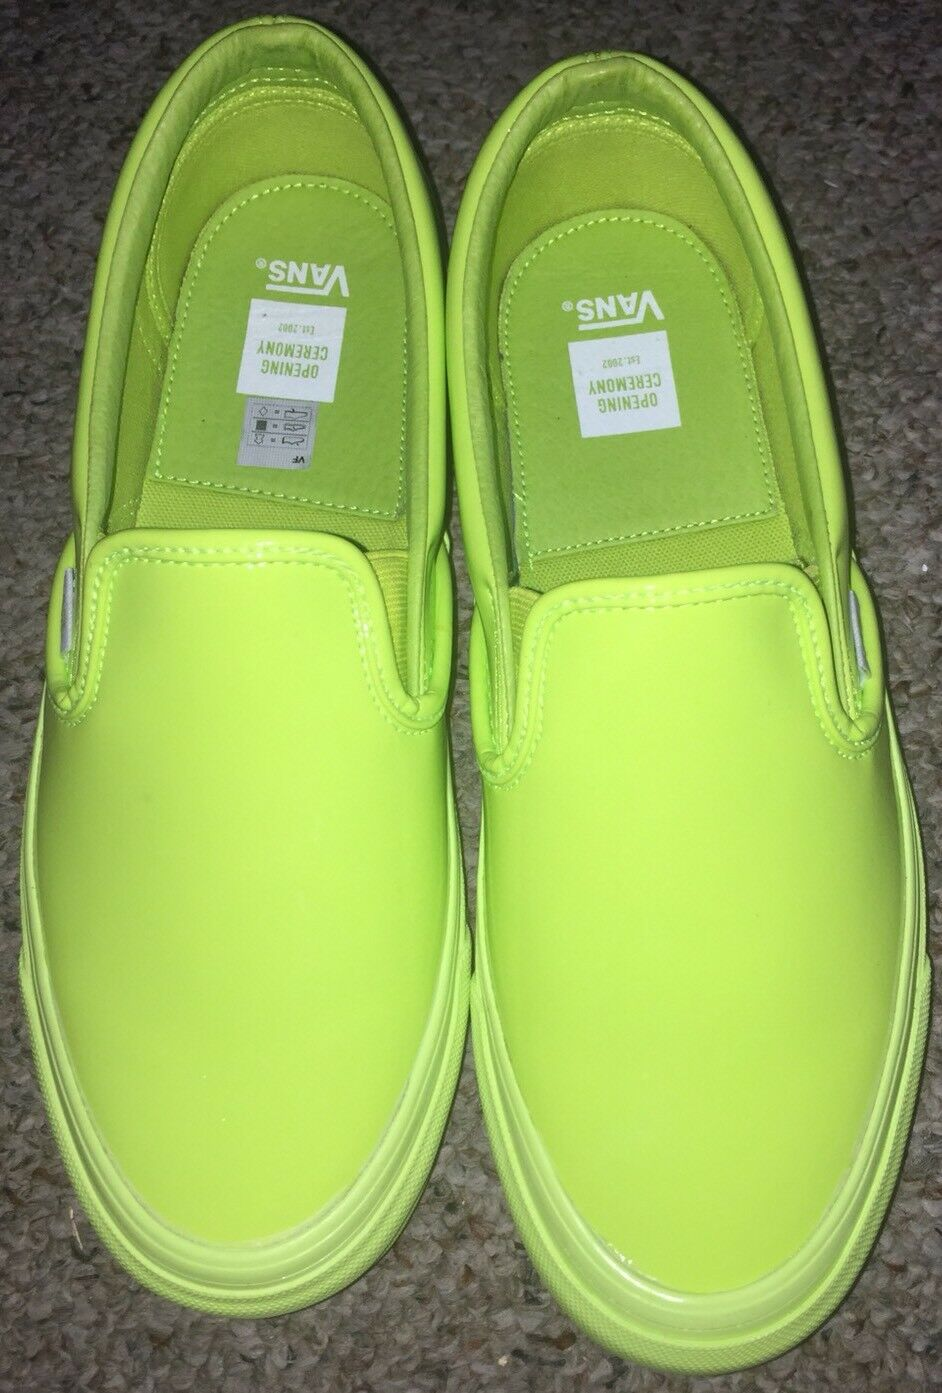 Vans x Opening Ceremony Classic À Enfiler OG Patent Cuir Homme Taille 9 vert citron